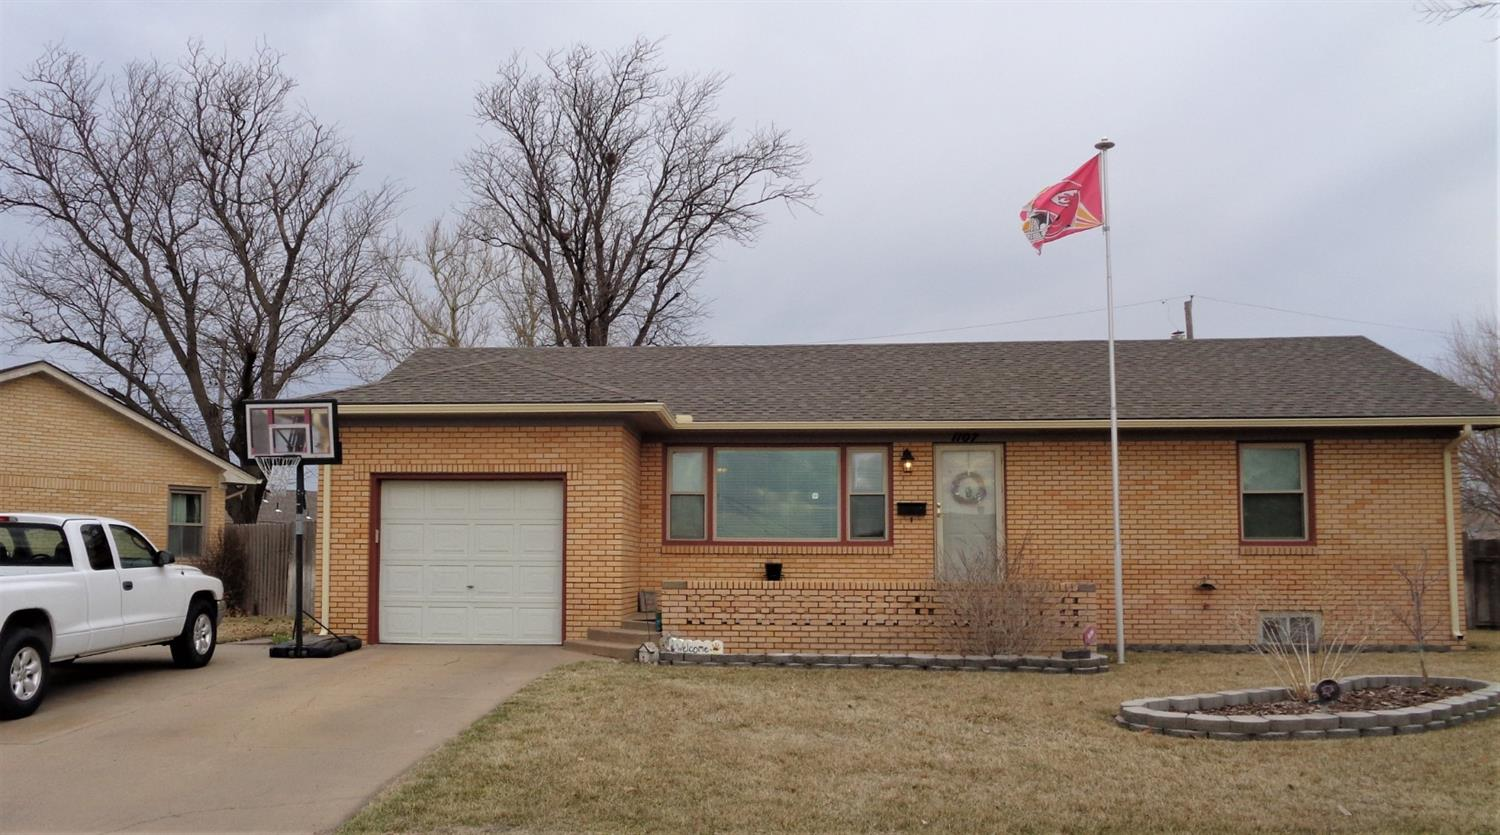 Nice brick home, move in ready. Spacious living room, kitchen with breakfast nook and refrigerator and stove, plenty of cabinet space, two large bedrooms, full bath and main floor utility room.  CH & CA, some replacement windows.The basement has family room with wet bar, two non-conf. bedrooms, 3/4 bath and office and mechanical room. Single attached garage with double drive for extra parking, privacy fenced yard with sprinklers, garden space and garden shed. Sell contingent on homeowner purchasing another home.